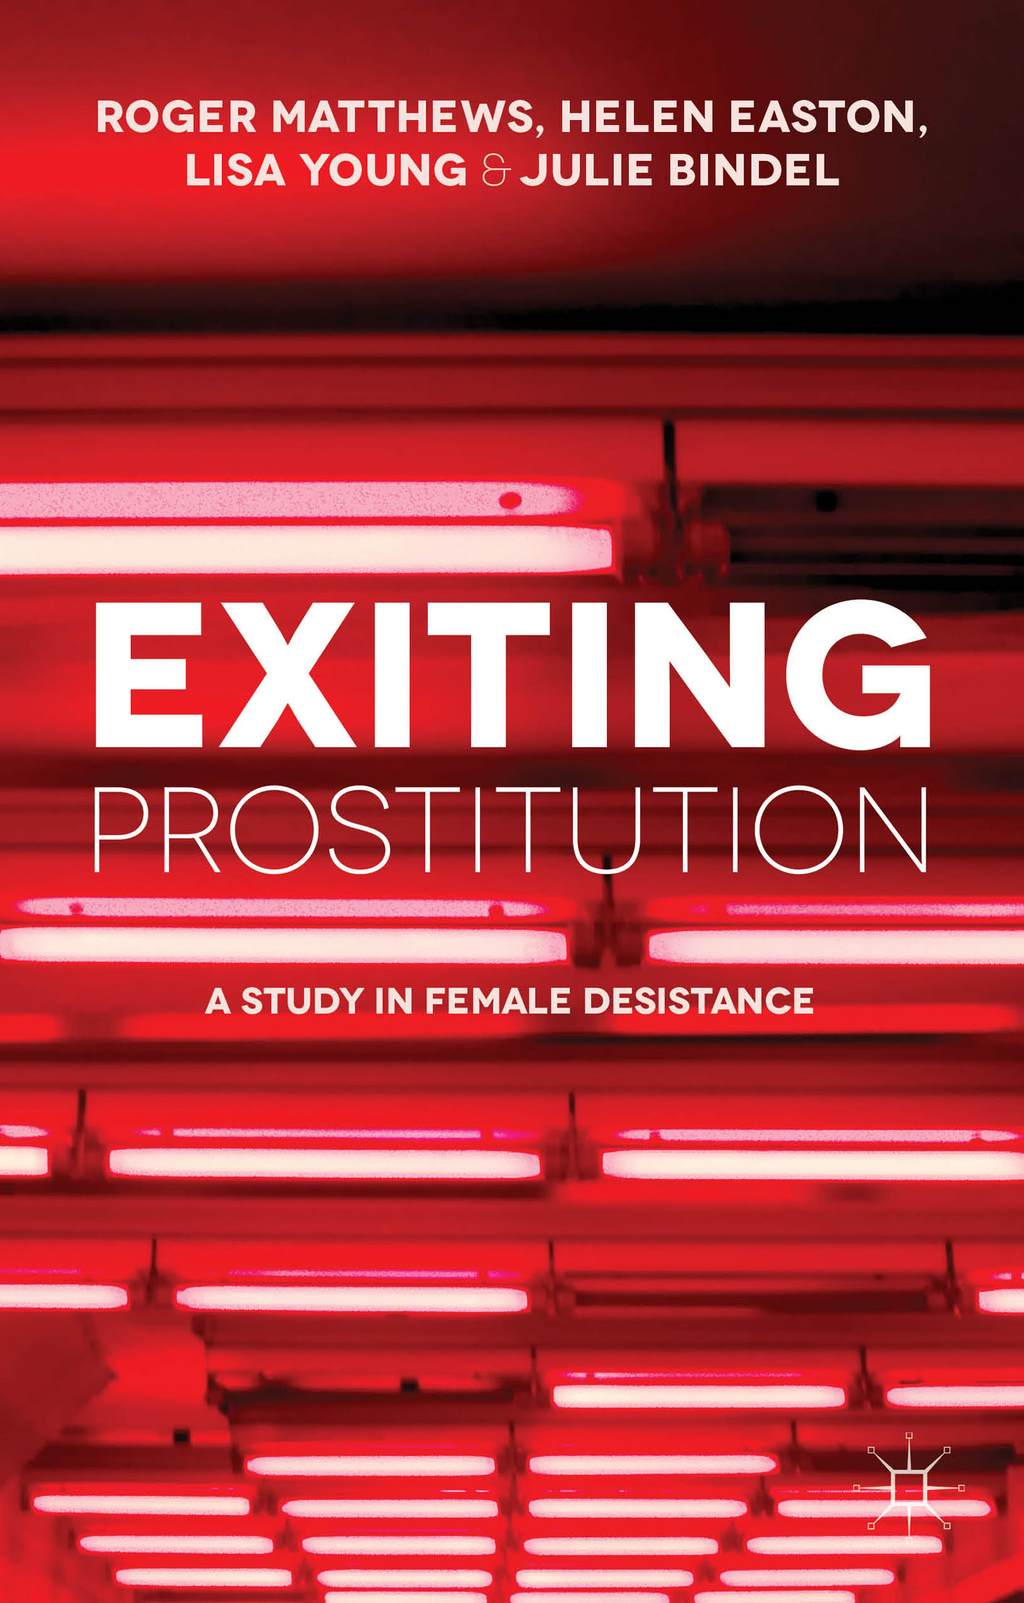 Exiting Prostitution A Study in Female Desistance